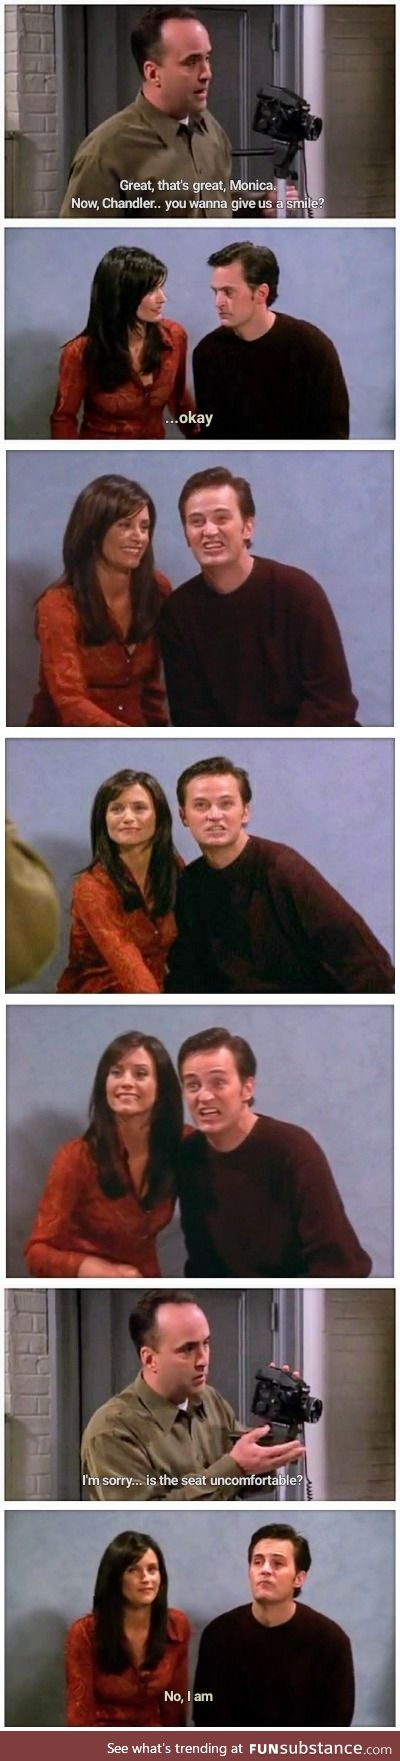 When people ask me to smile for the camera [Chandler Bing]